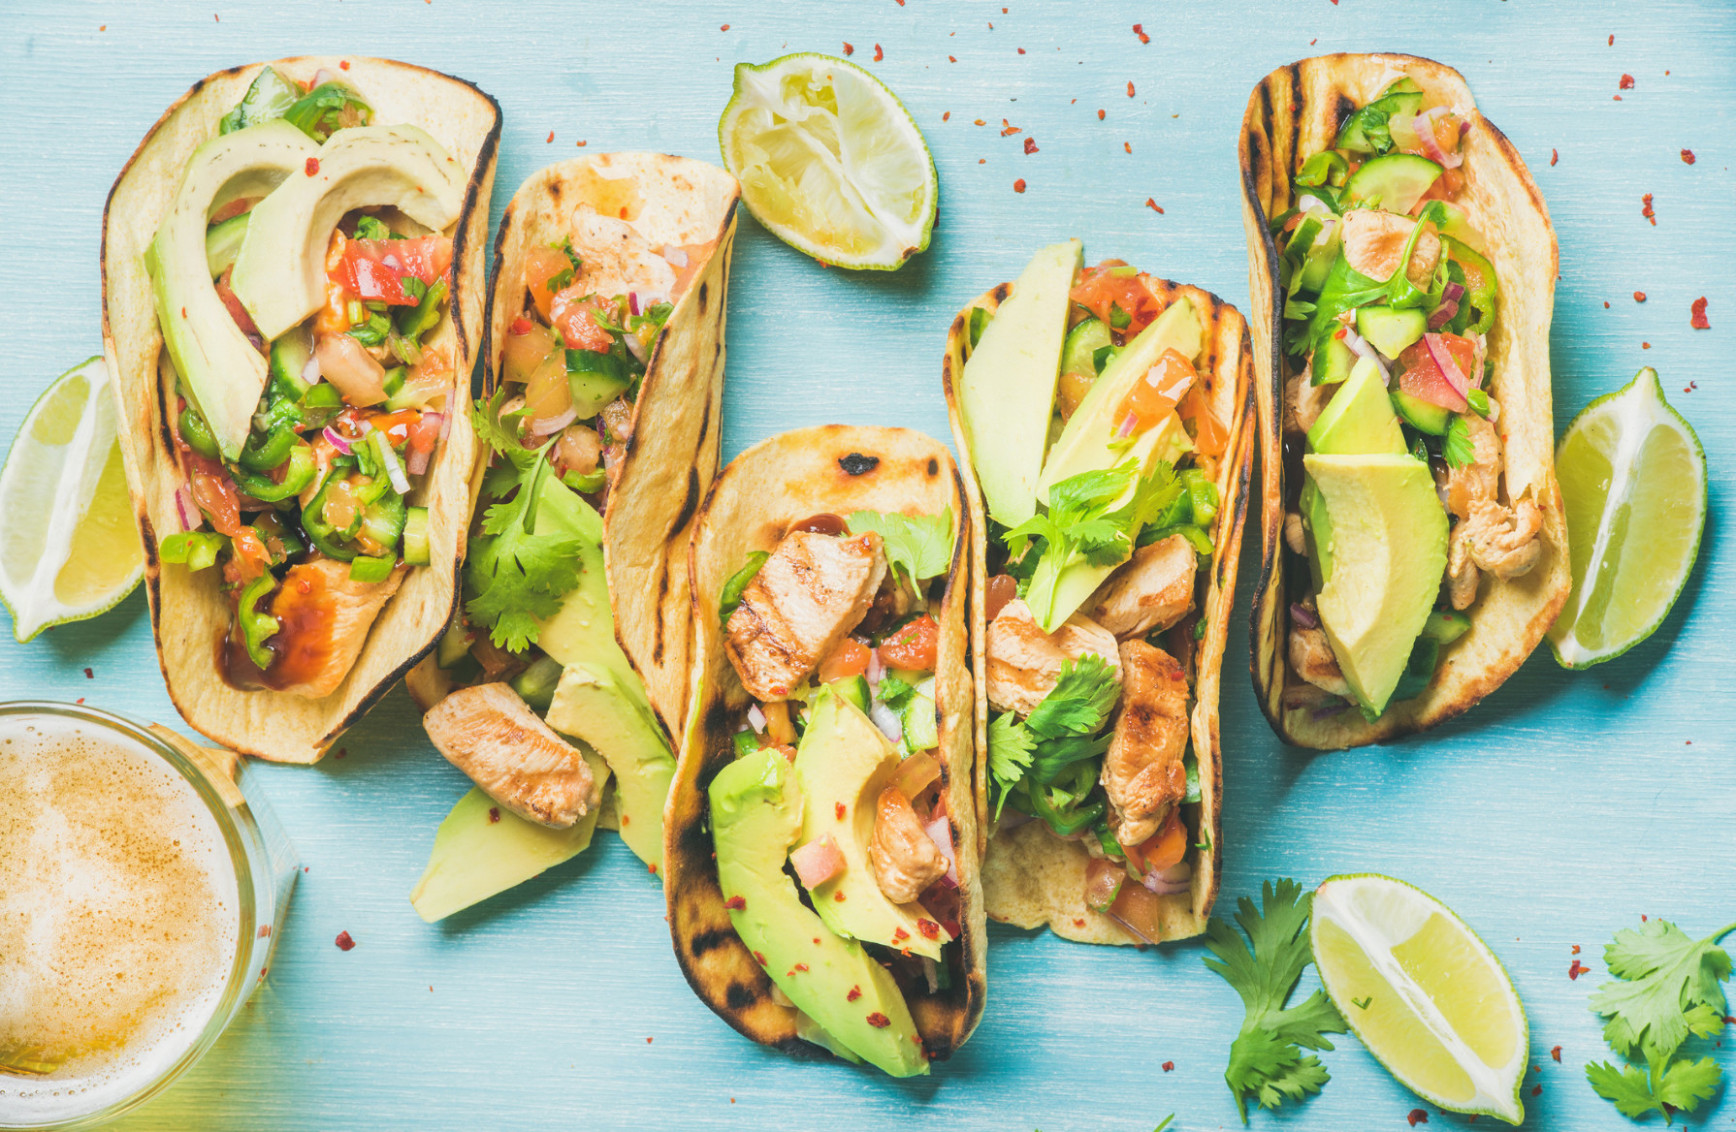 15 amazing chicken and avocado recipes - Chicago Tribune - avocado recipes chicken